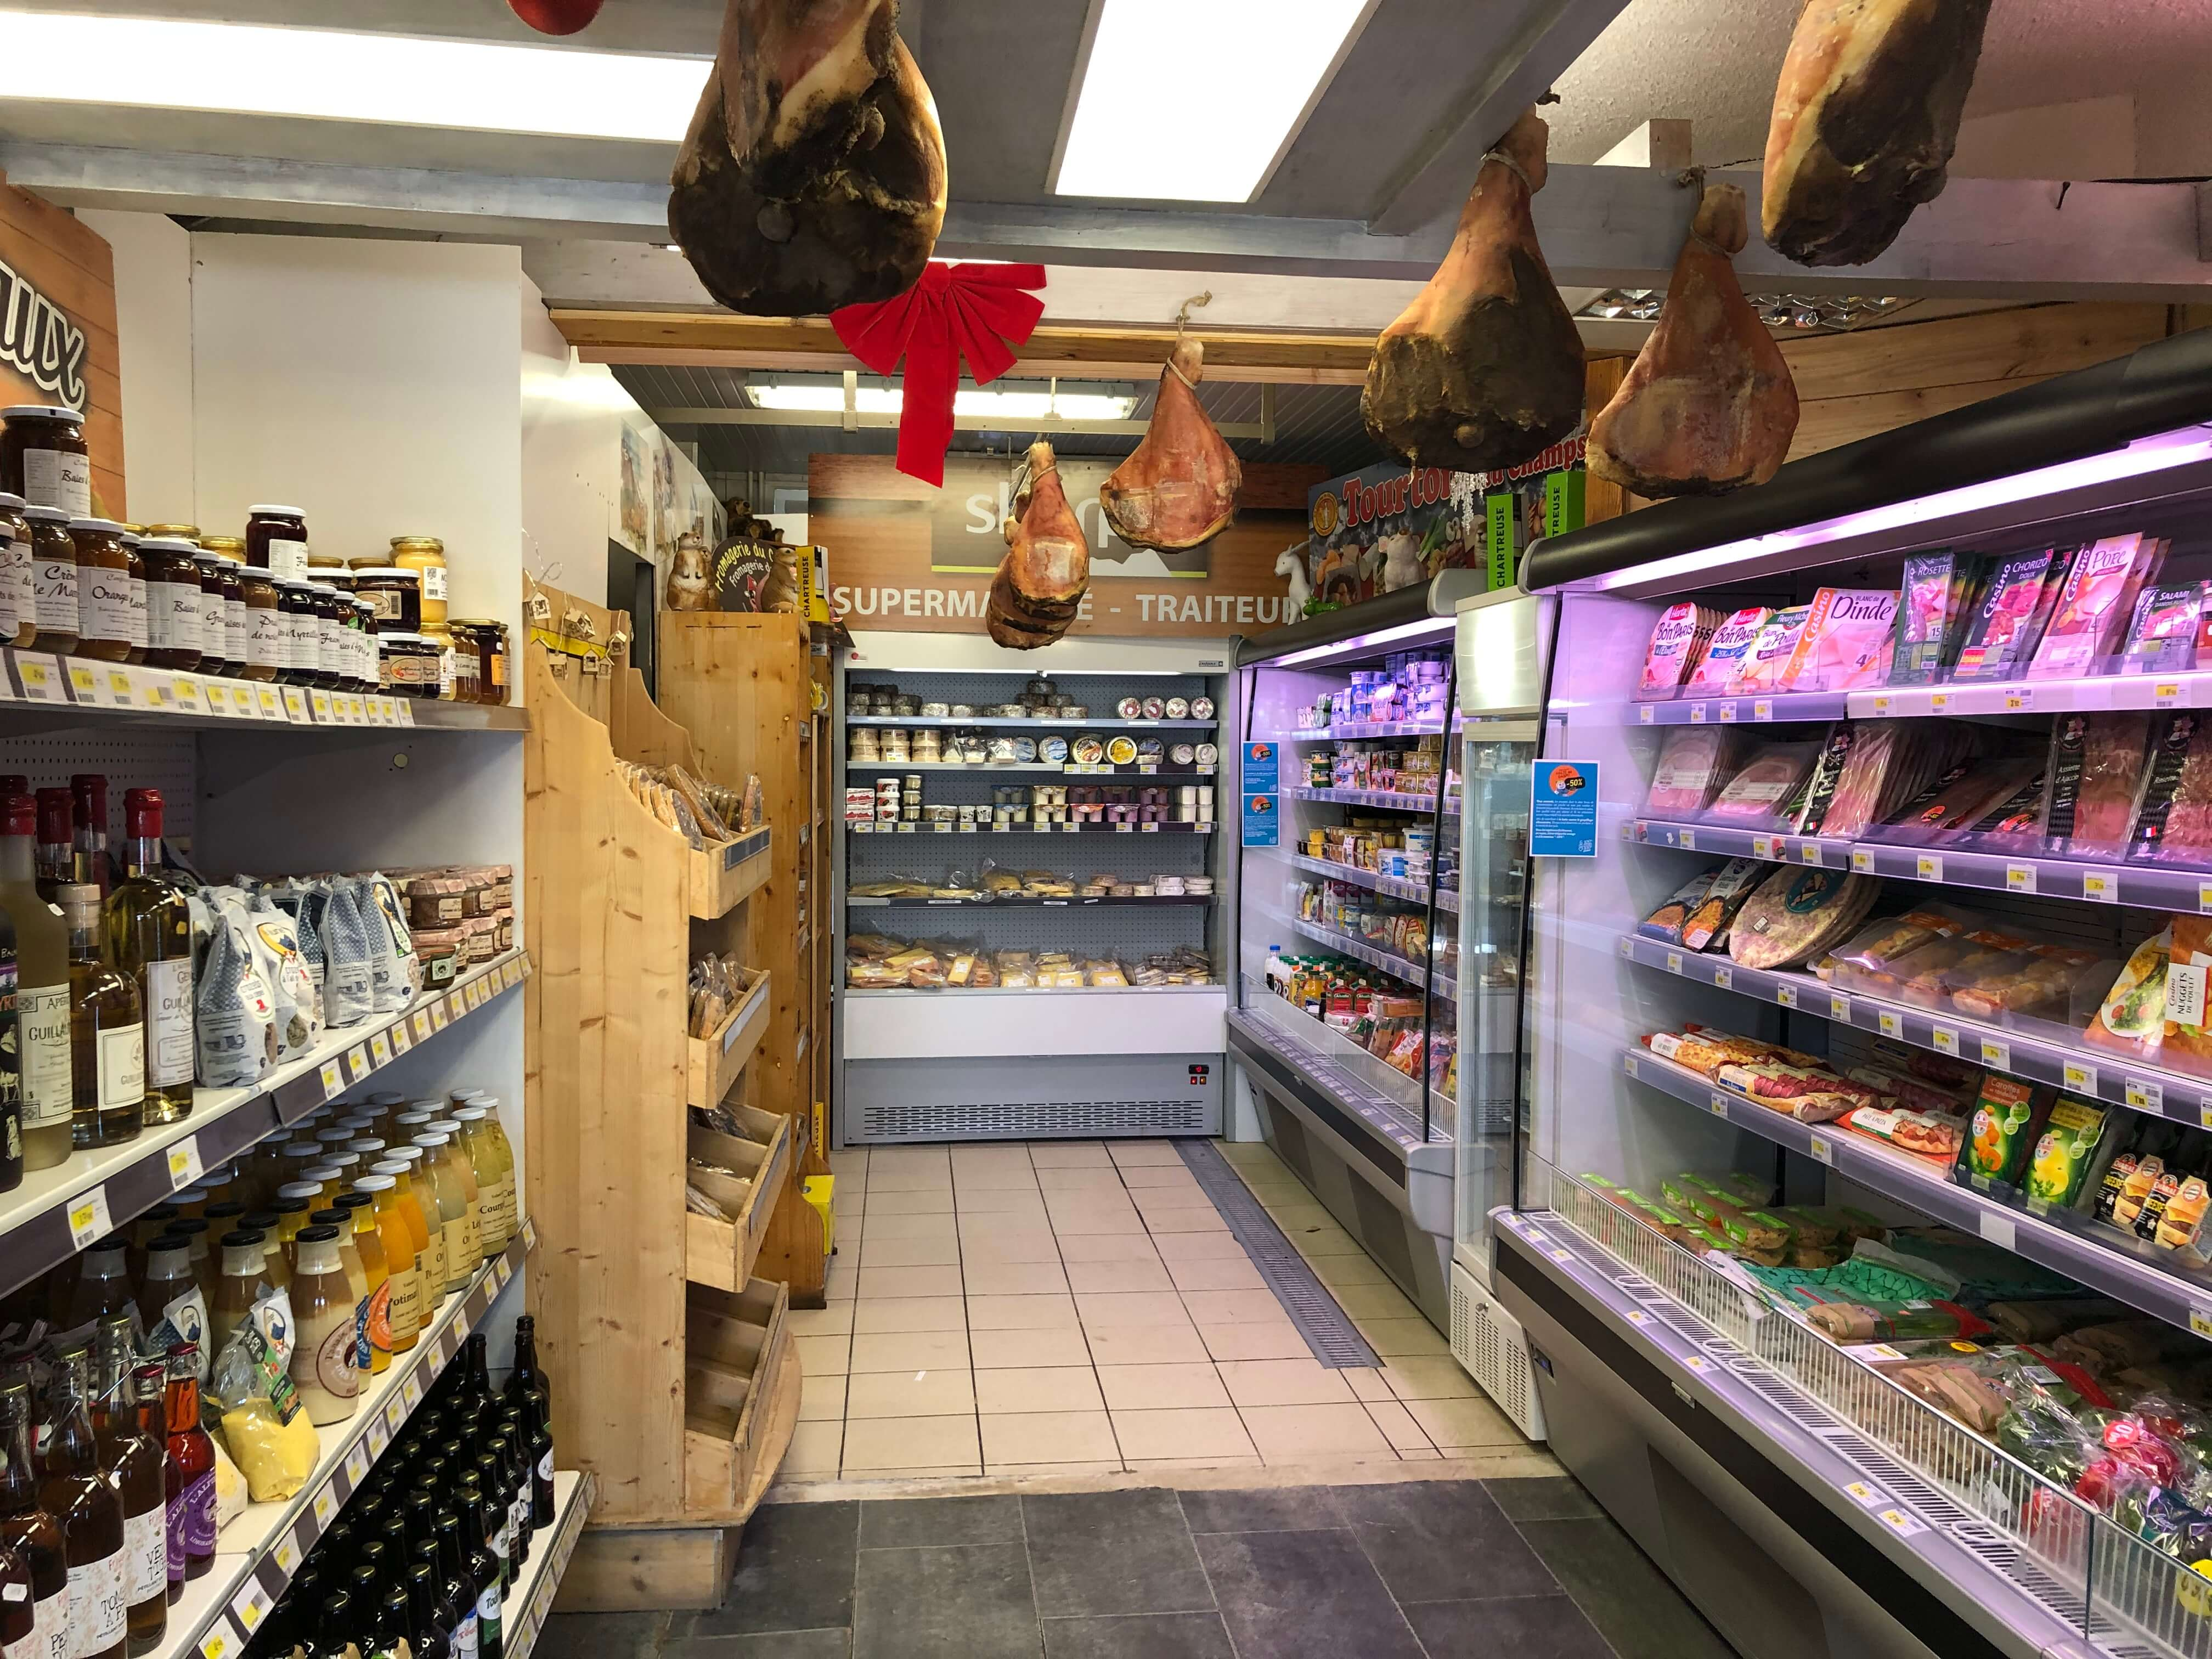 Sherpa supermarket Orcières 1850 shelves with dry ham